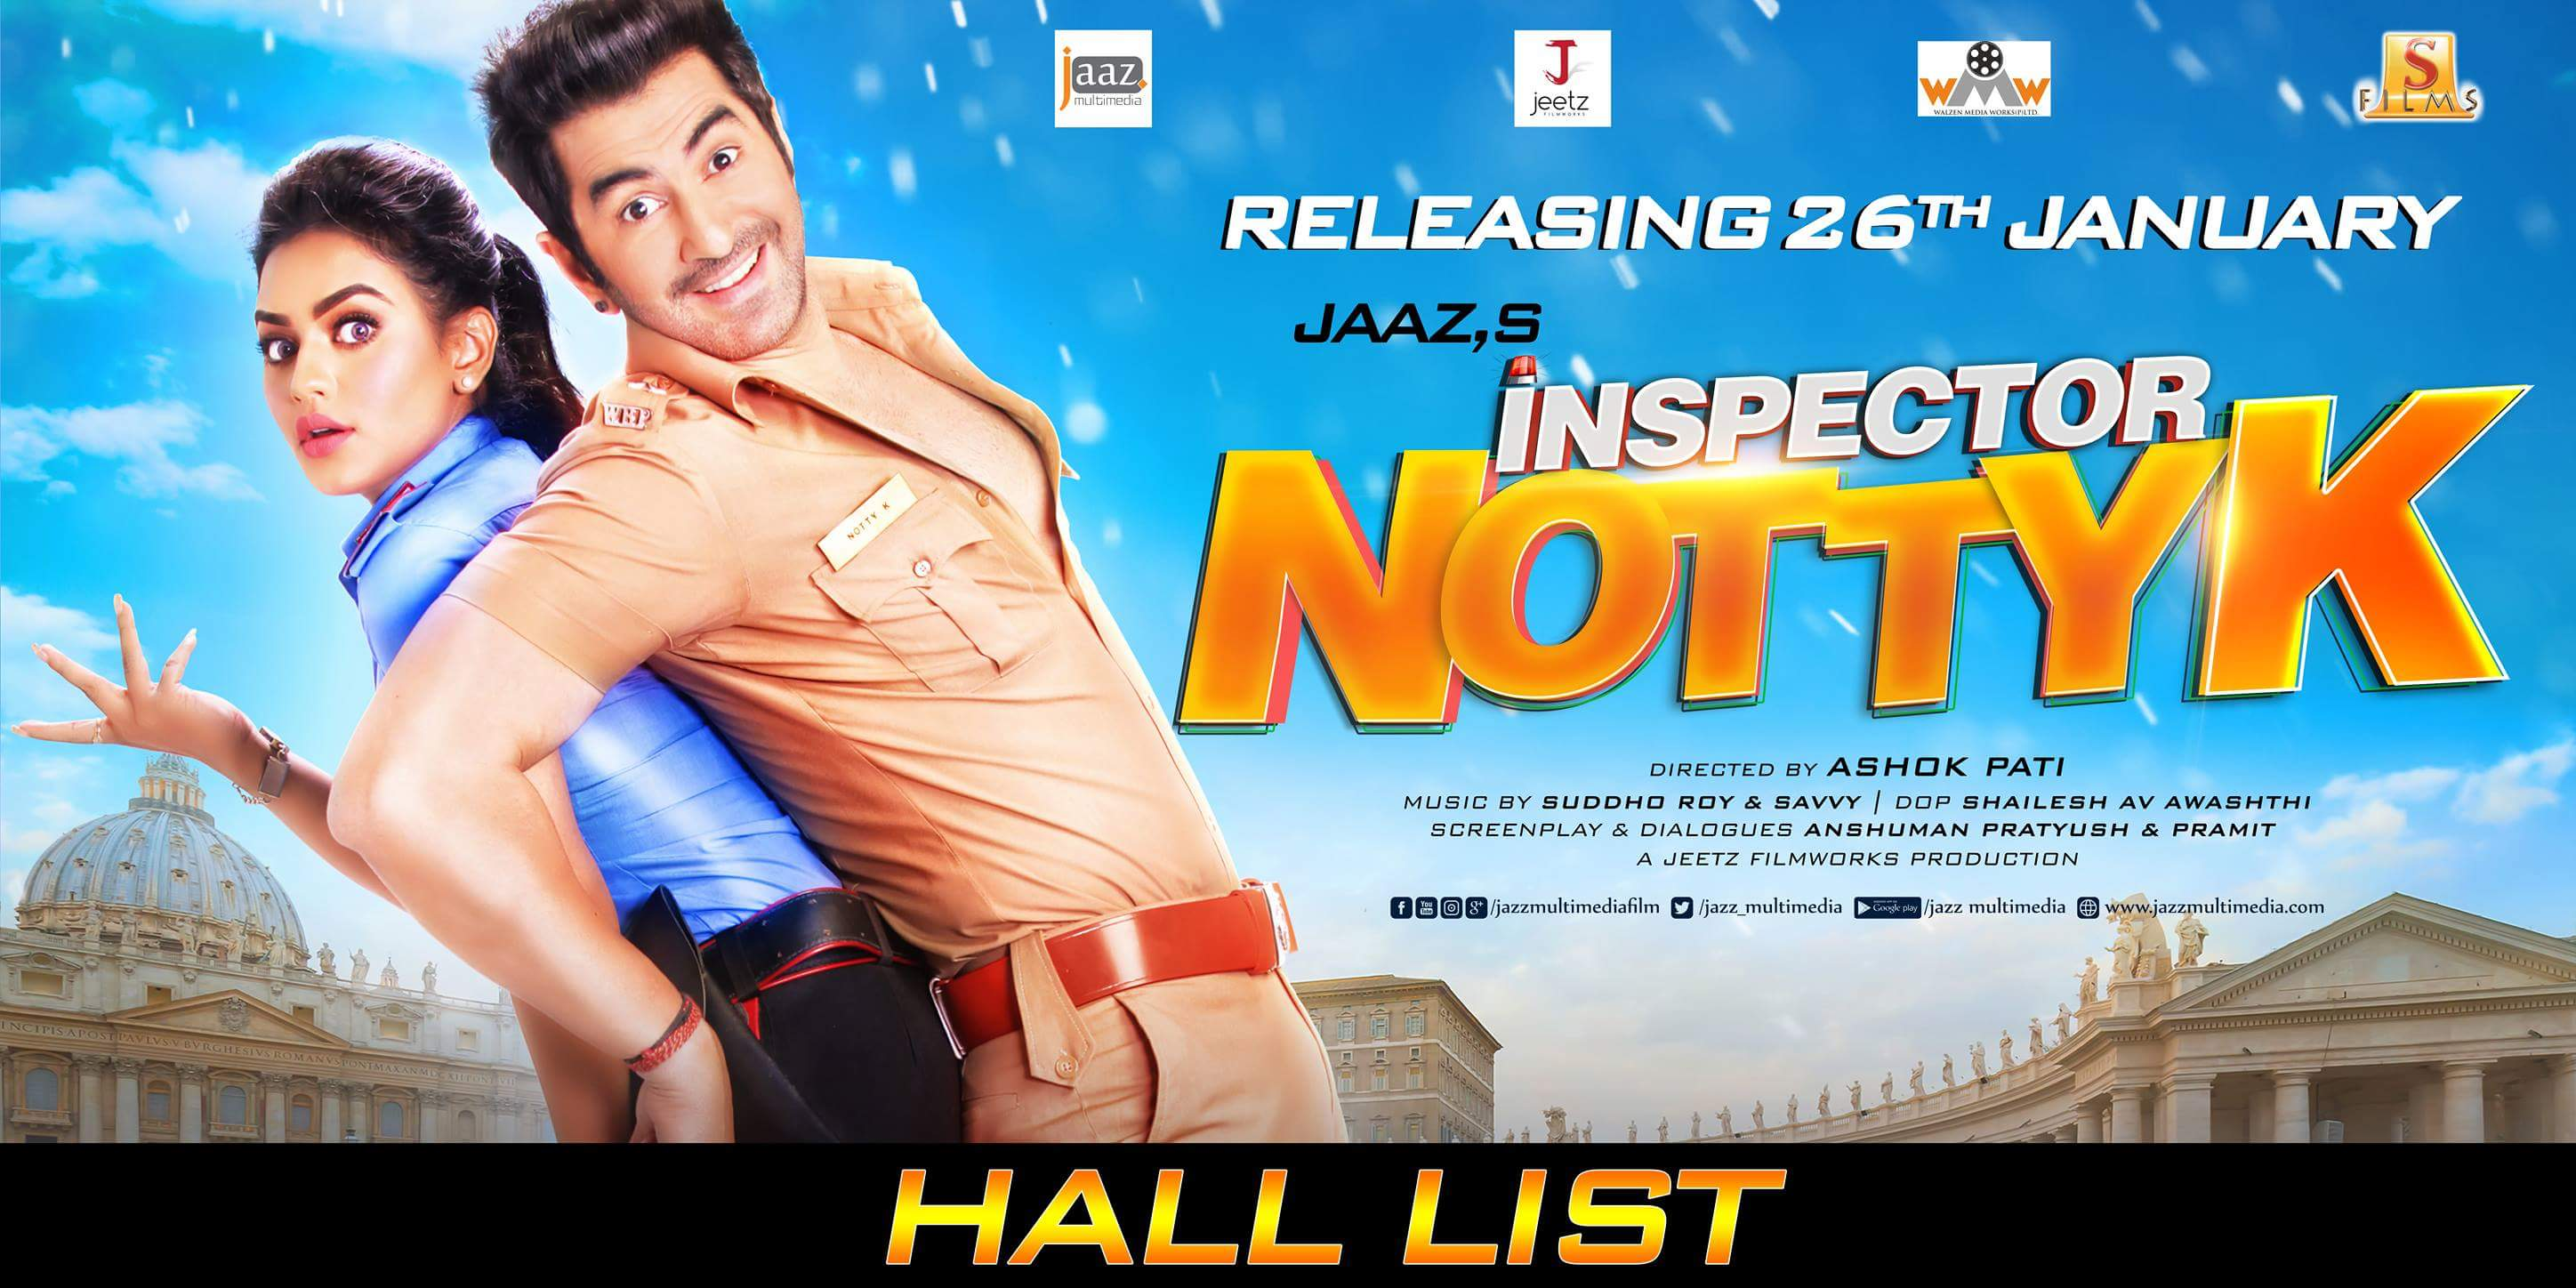 Inspector Notty K (2018) Bengali Full Movie 480p DVDScr 350MB MKV *Eid Special*